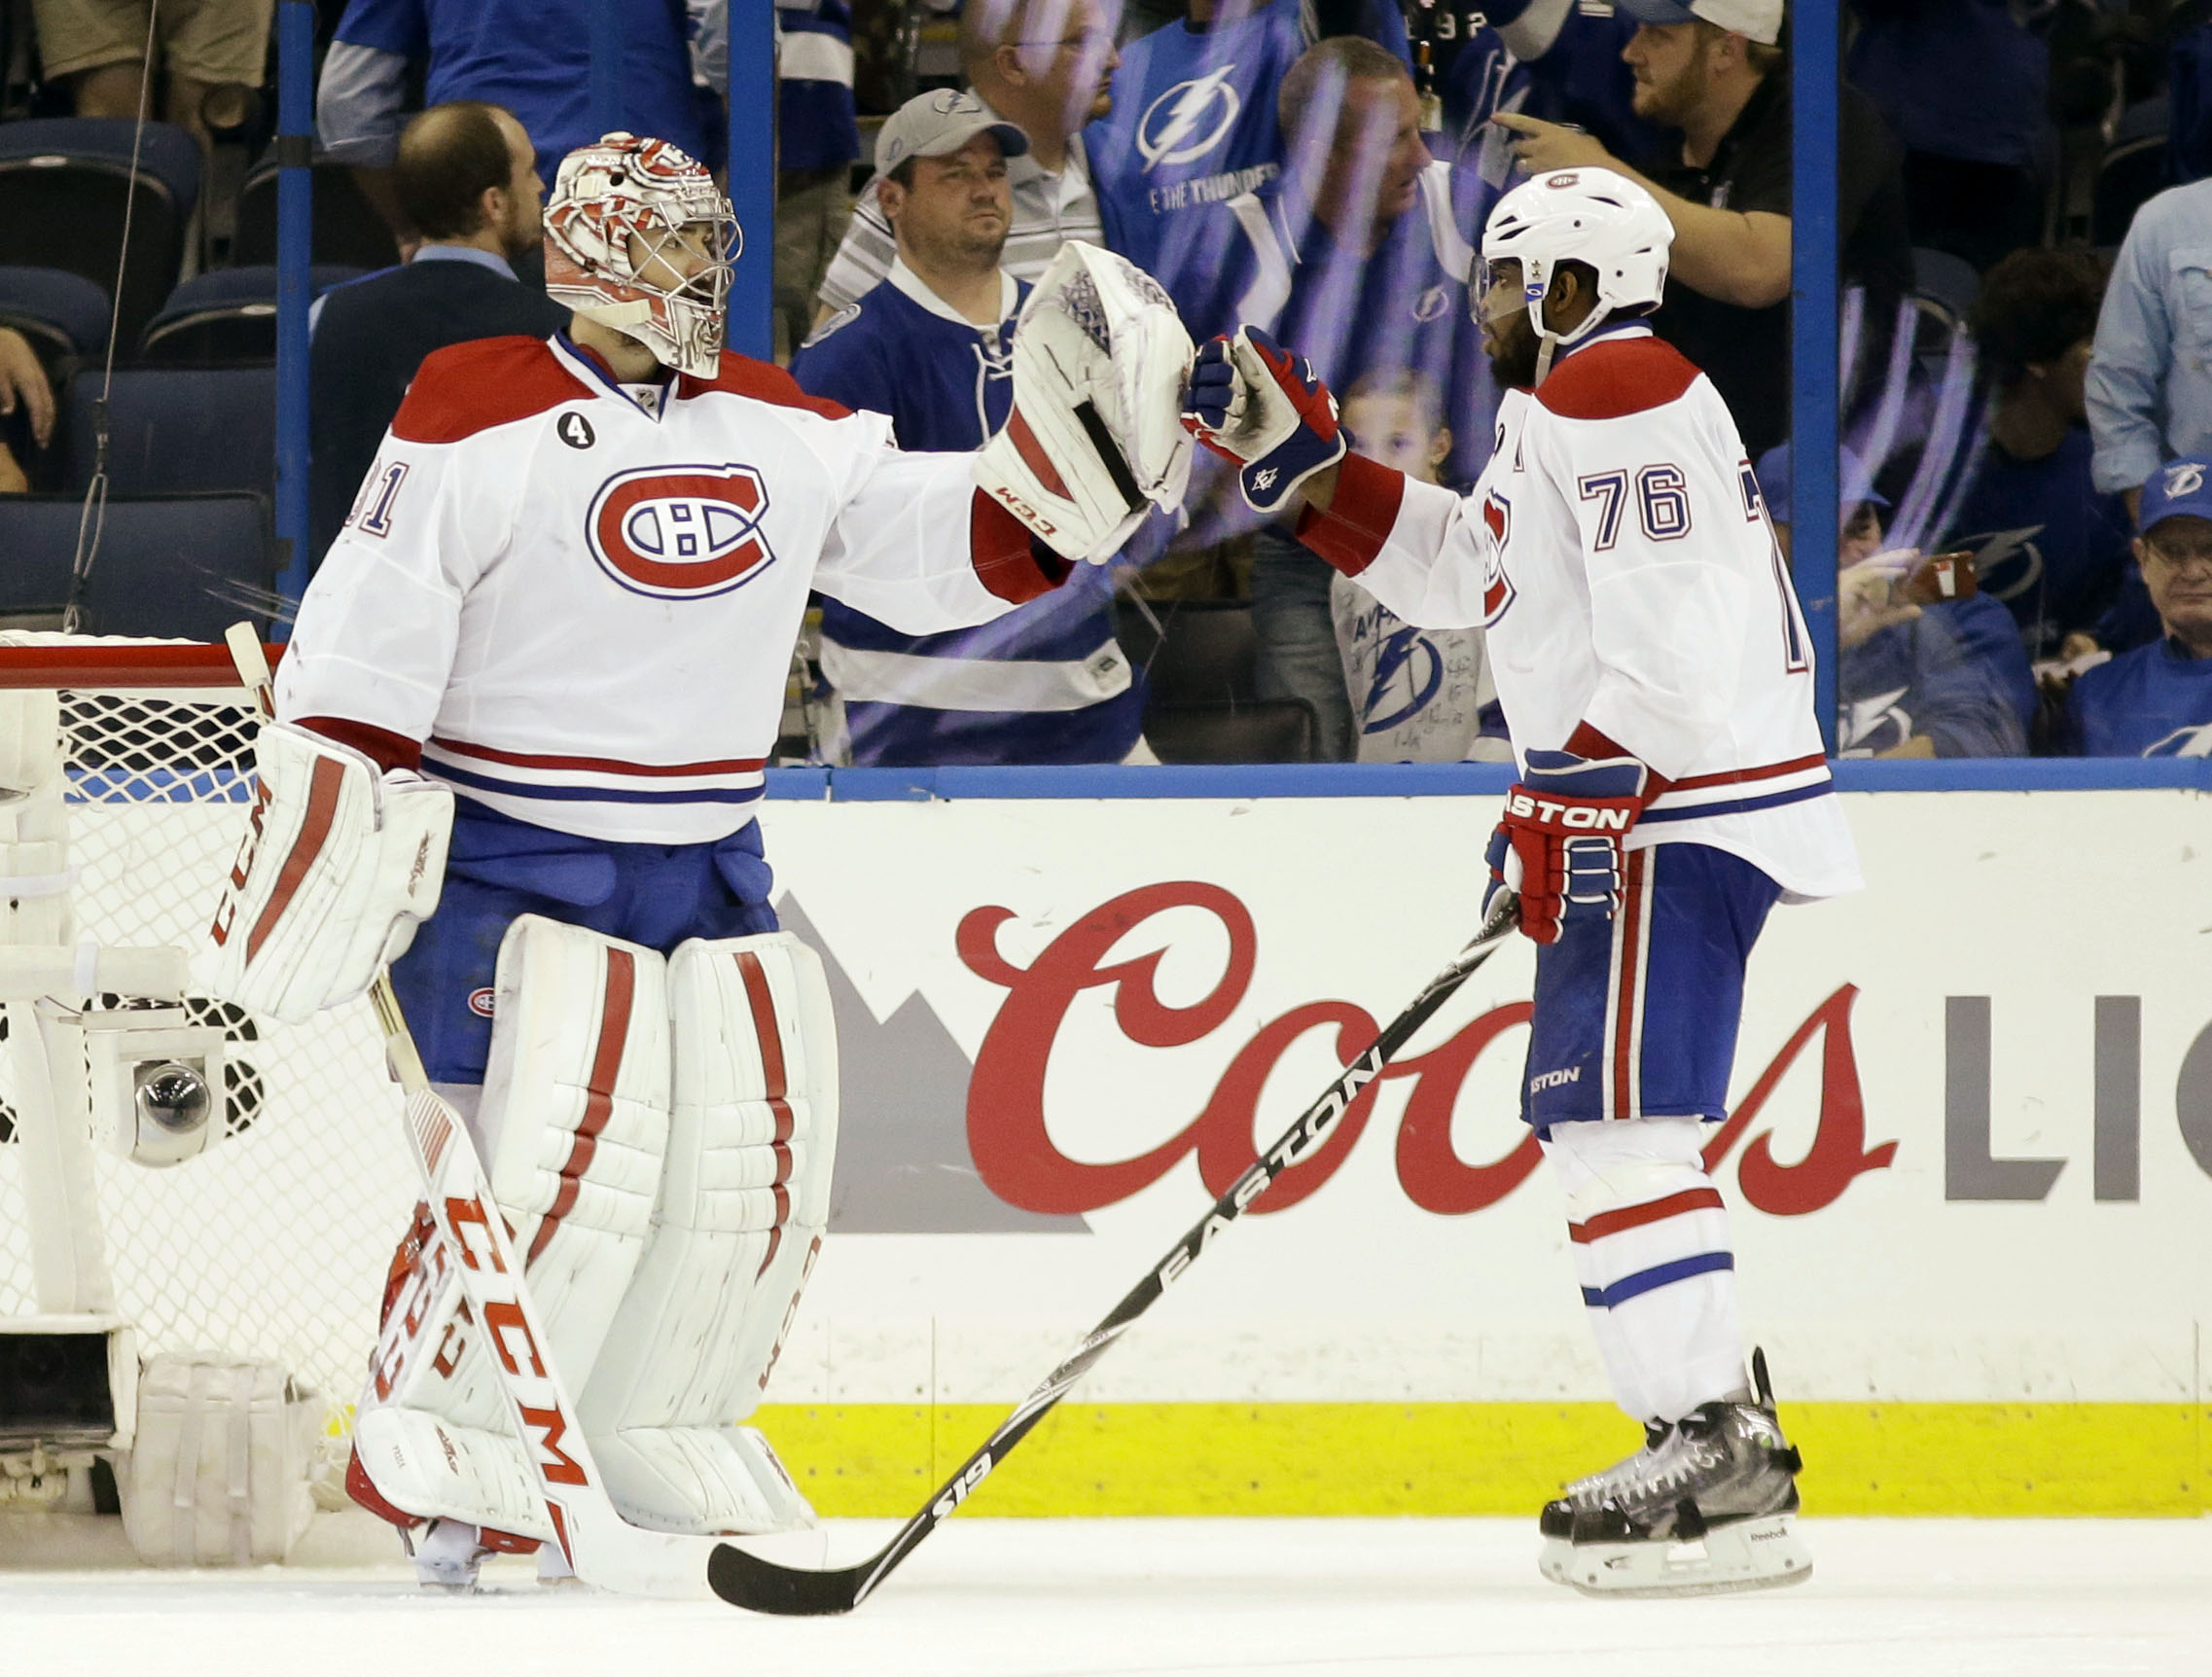 Montreal Canadiens defenseman P.K. Subban, right, and goalie Carey Price, left,  congratulate each other after the Canadiens defeated the Tampa Bay Lightning 6-2 during Game 4 of an NHL second round playoff match, Thursday, May 7, 2015, in Tampa, Fla. (AP